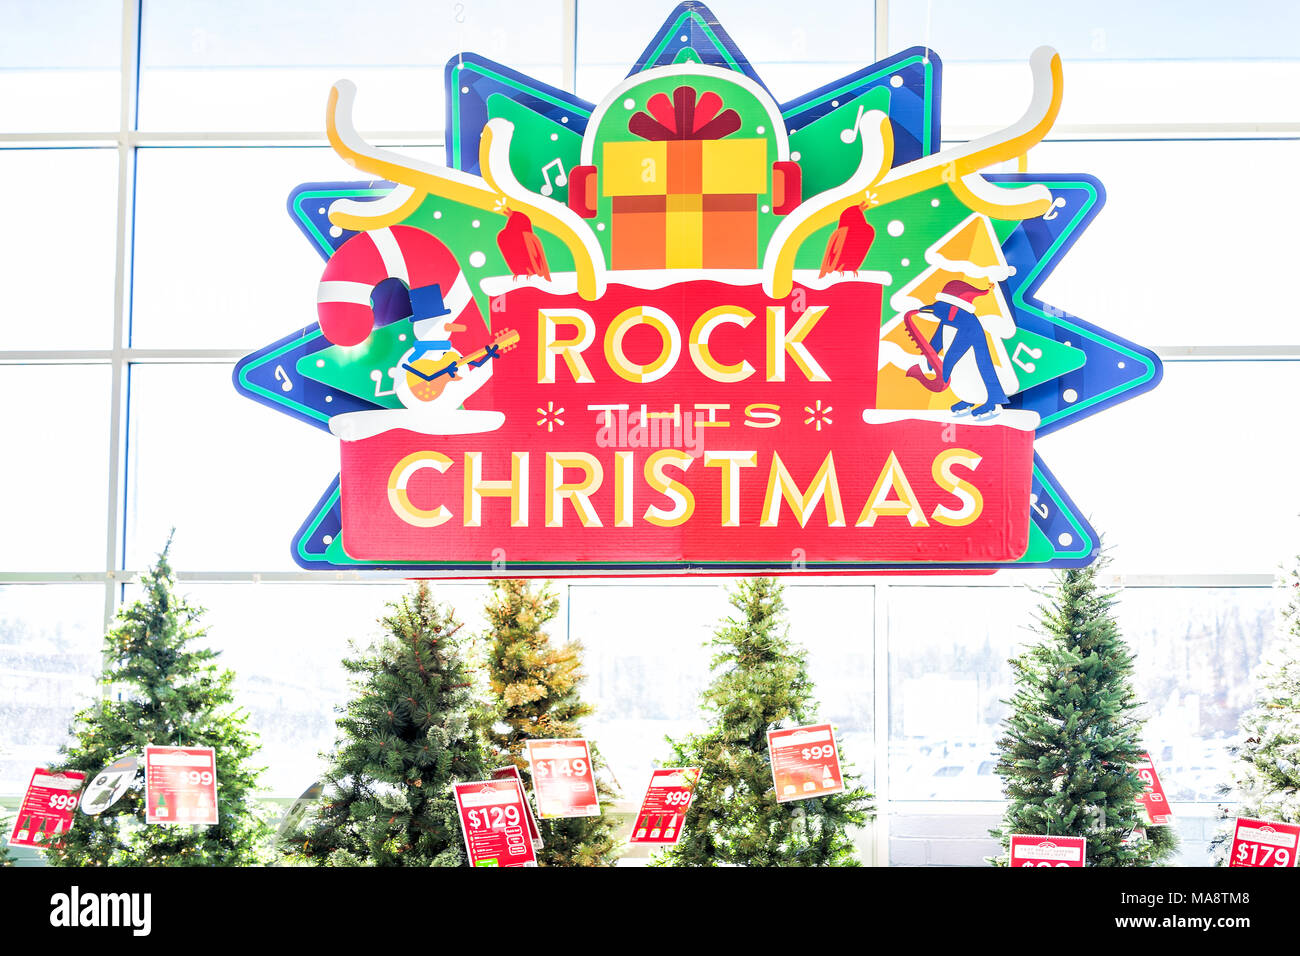 burke usa november 24 2017 rock this christmas tree display in walmart store entrance with prices sale of ornament holiday celebration in virgin - Walmart Christmas Tree Prices